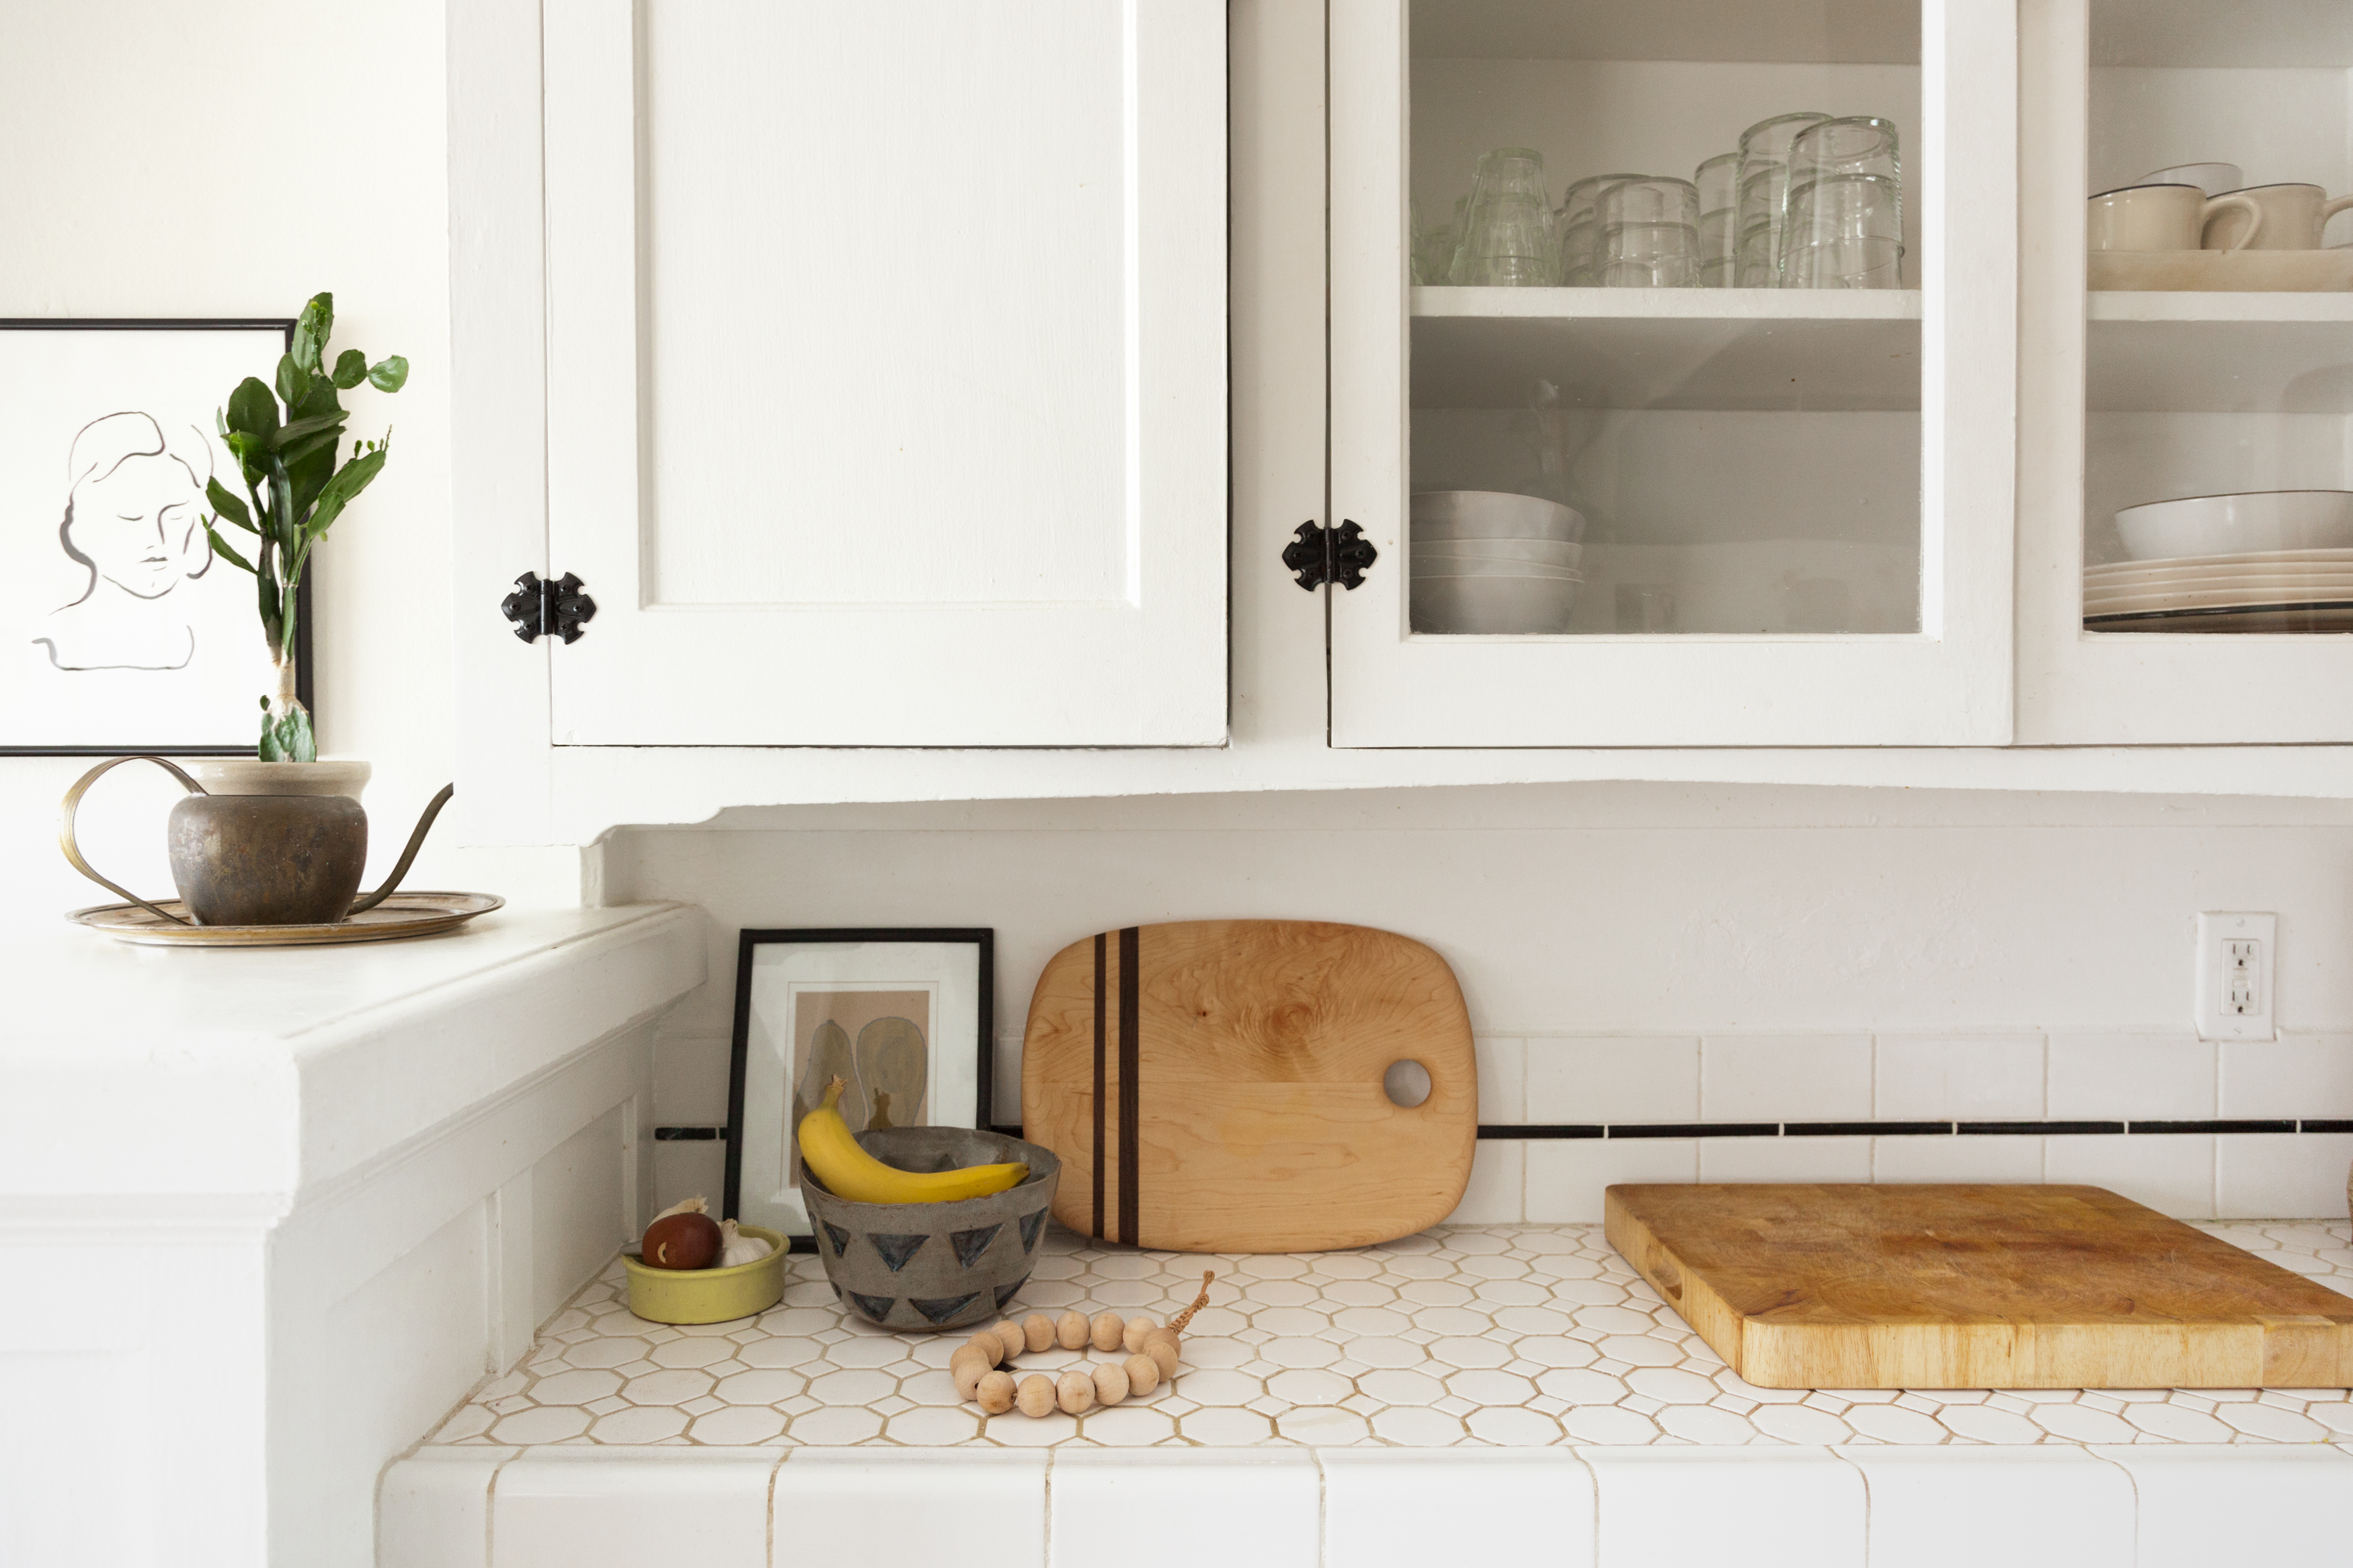 10 Of The Best Fixes For Rental Kitchen Problems Kitchn